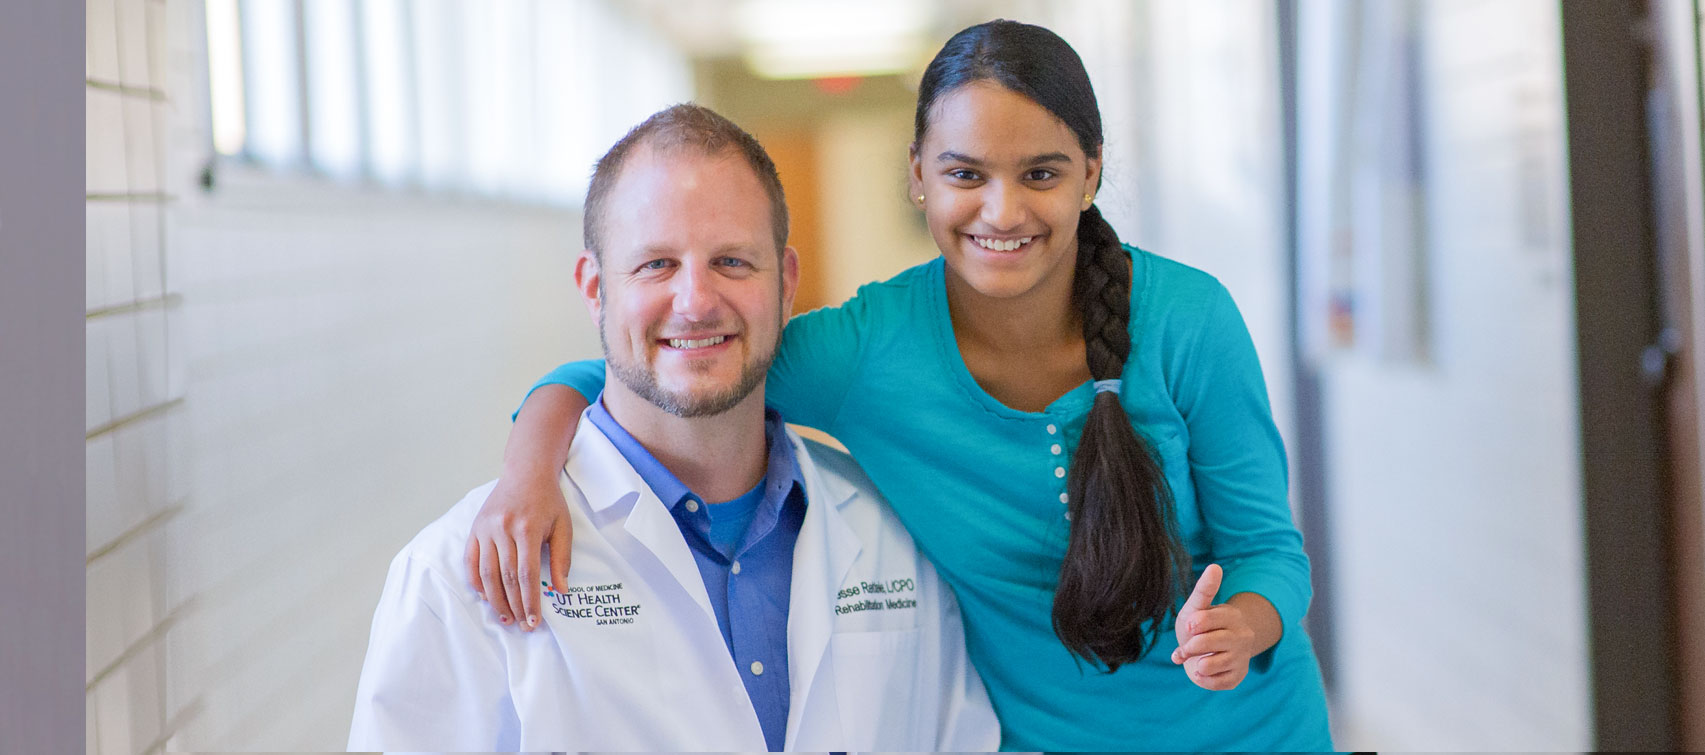 Dr. Rettele with young patient